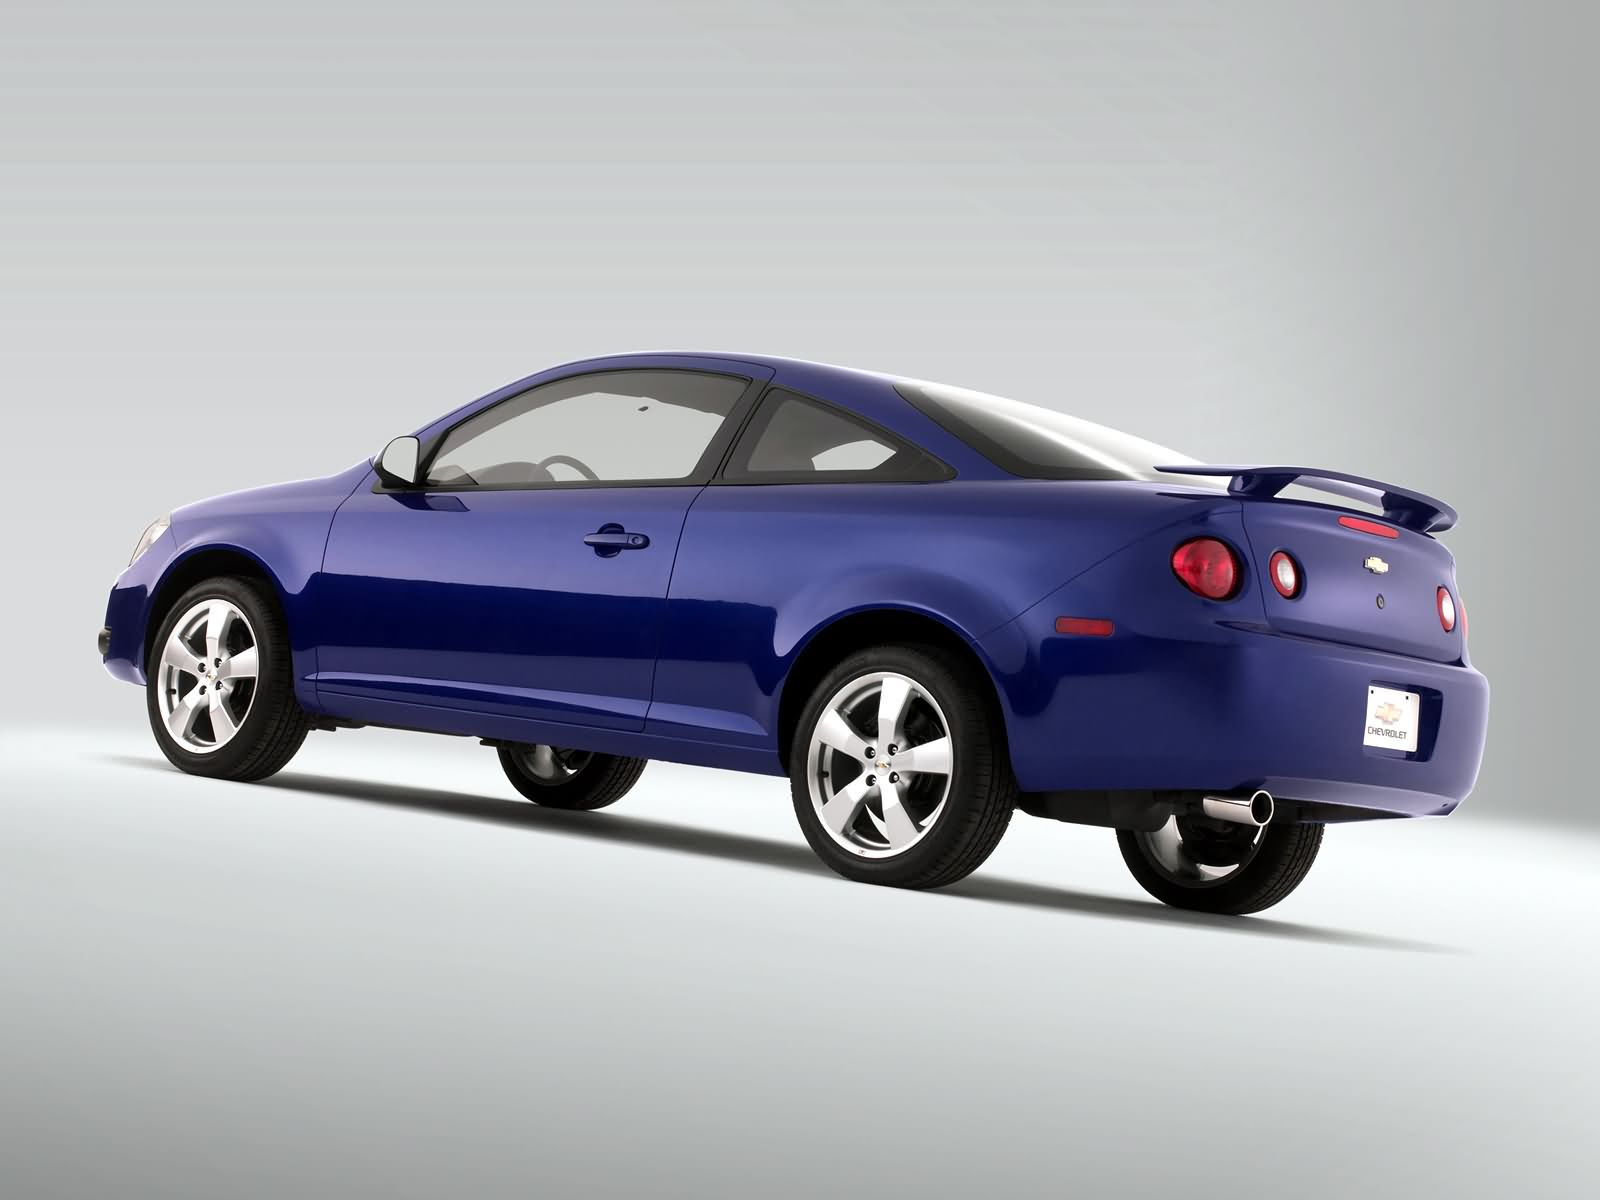 Chevrolet Cobalt photo 7639